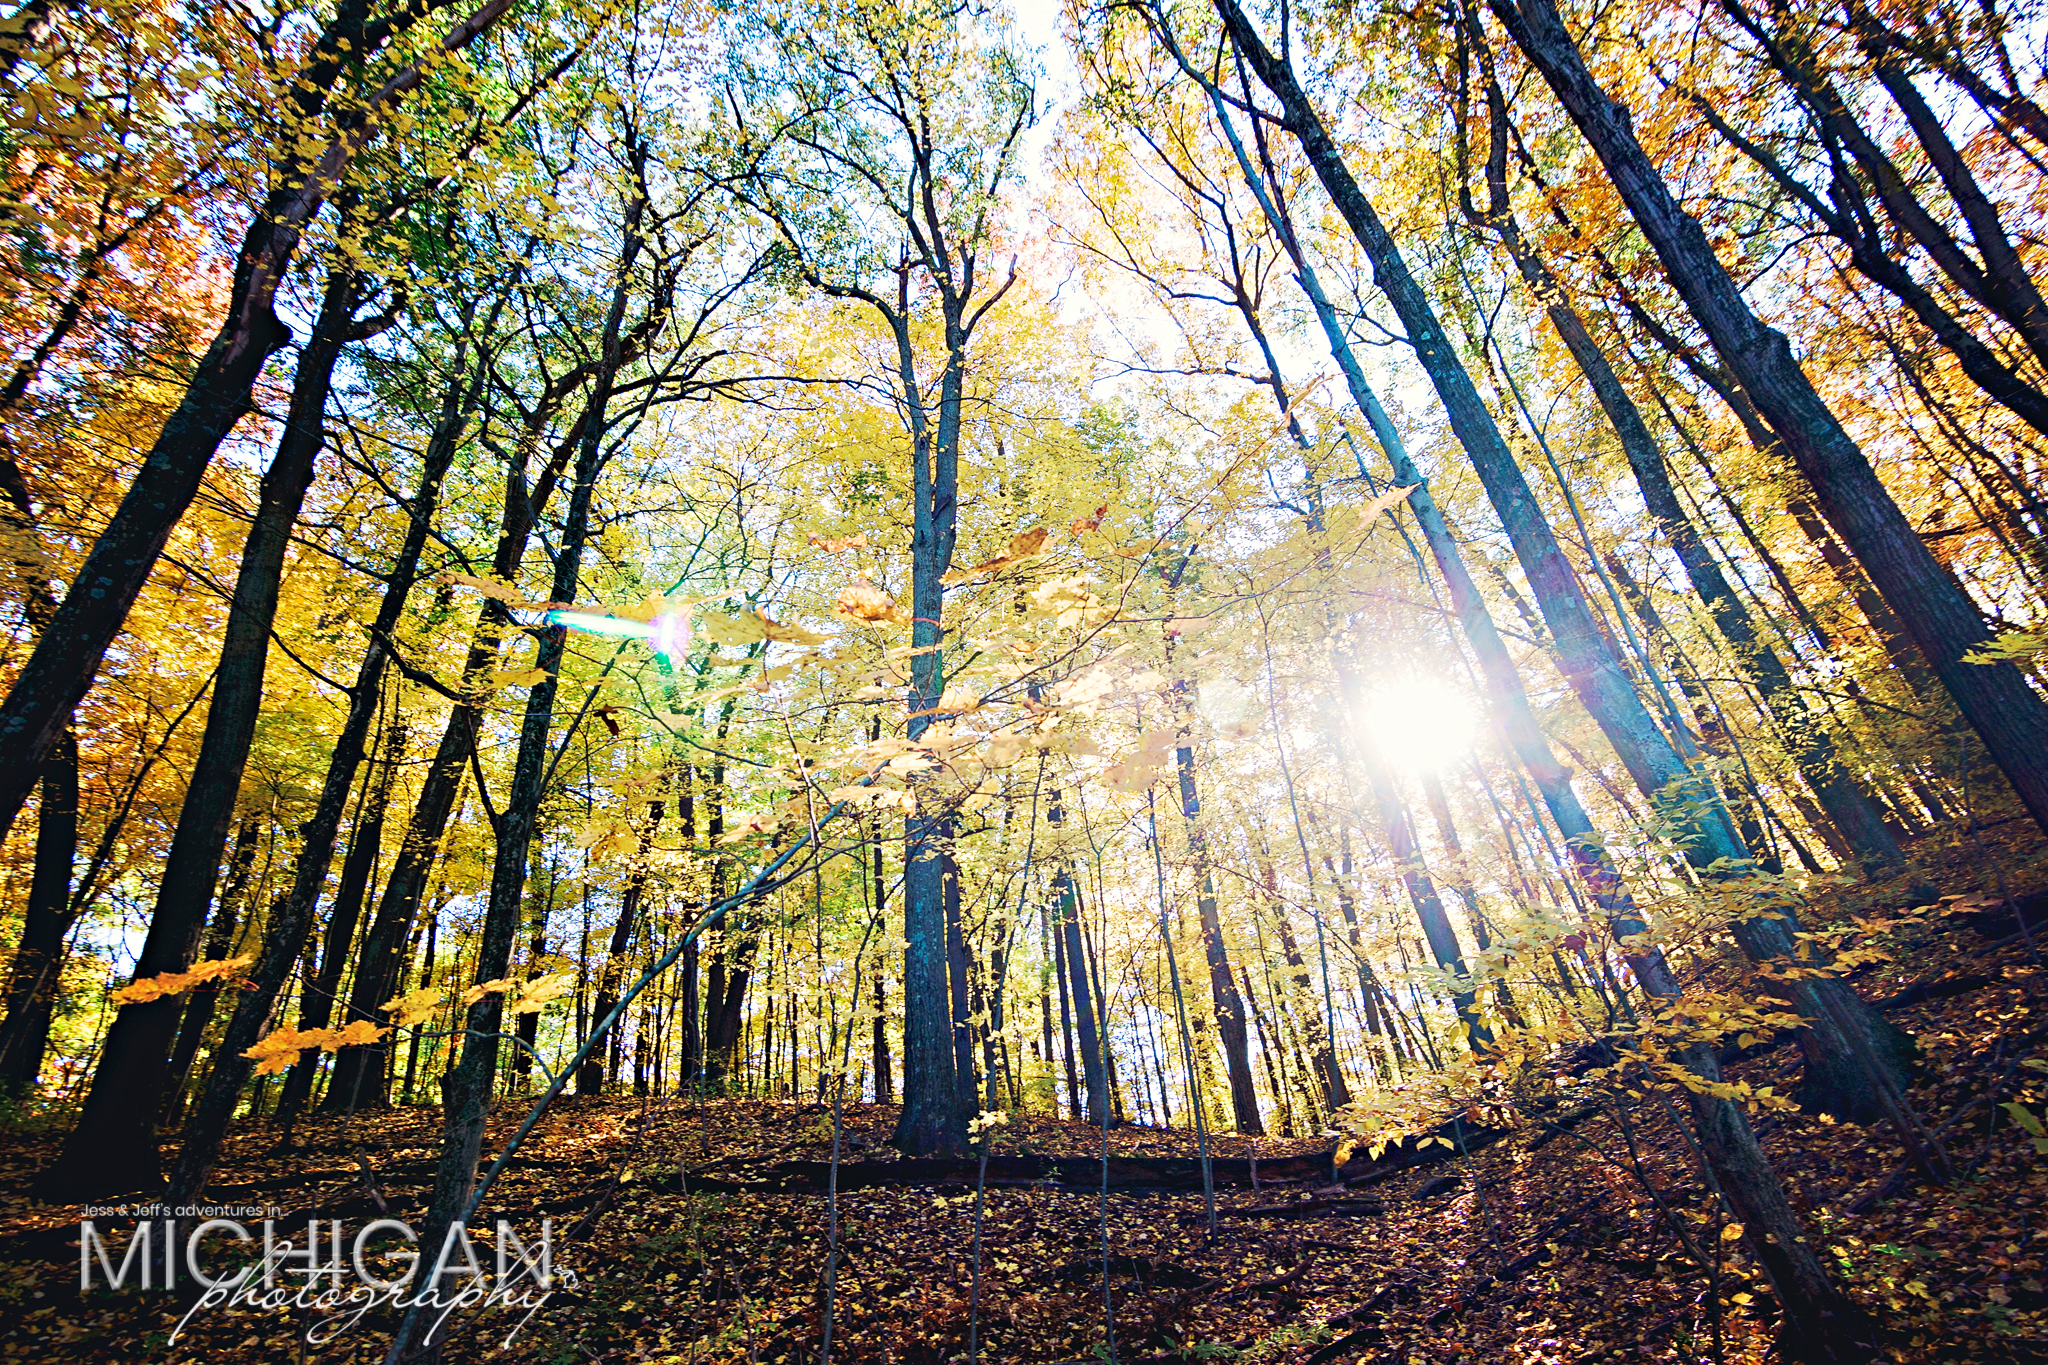 Sun shining through the yellowed woods at Holly State Recreation Area